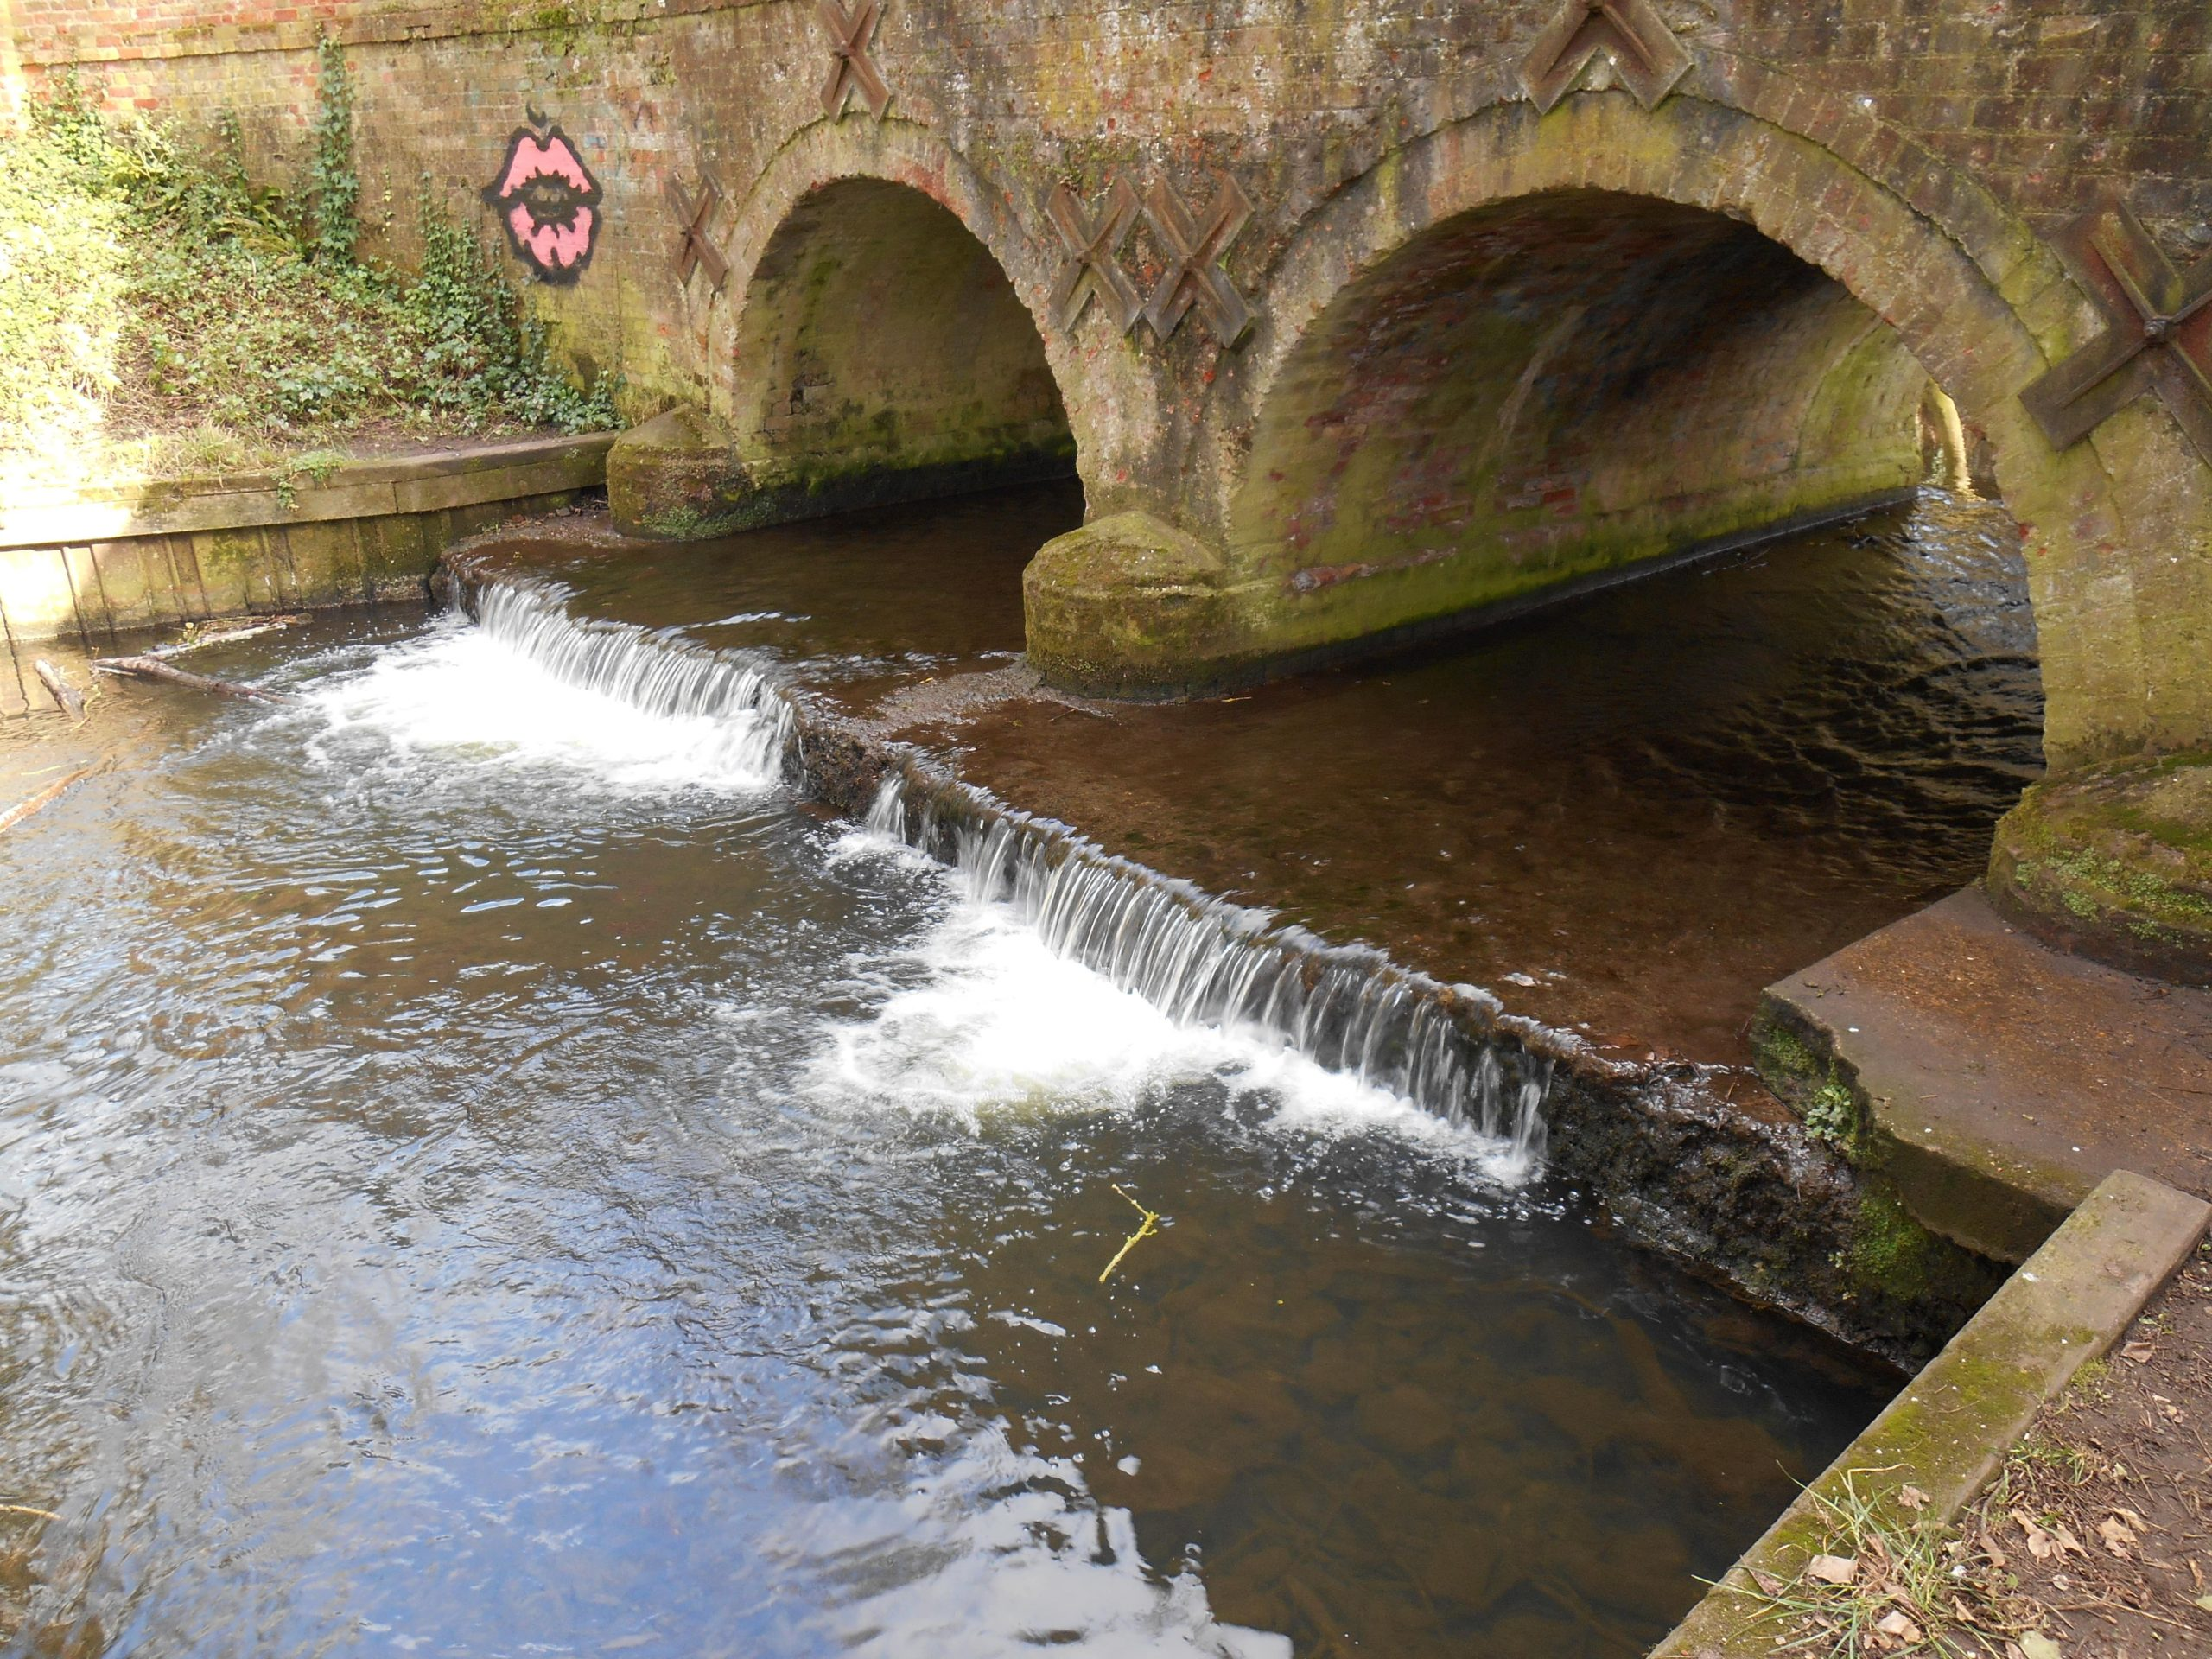 River Tiffey in Wymondham: Phase 2 of the work to improve fish passage begins